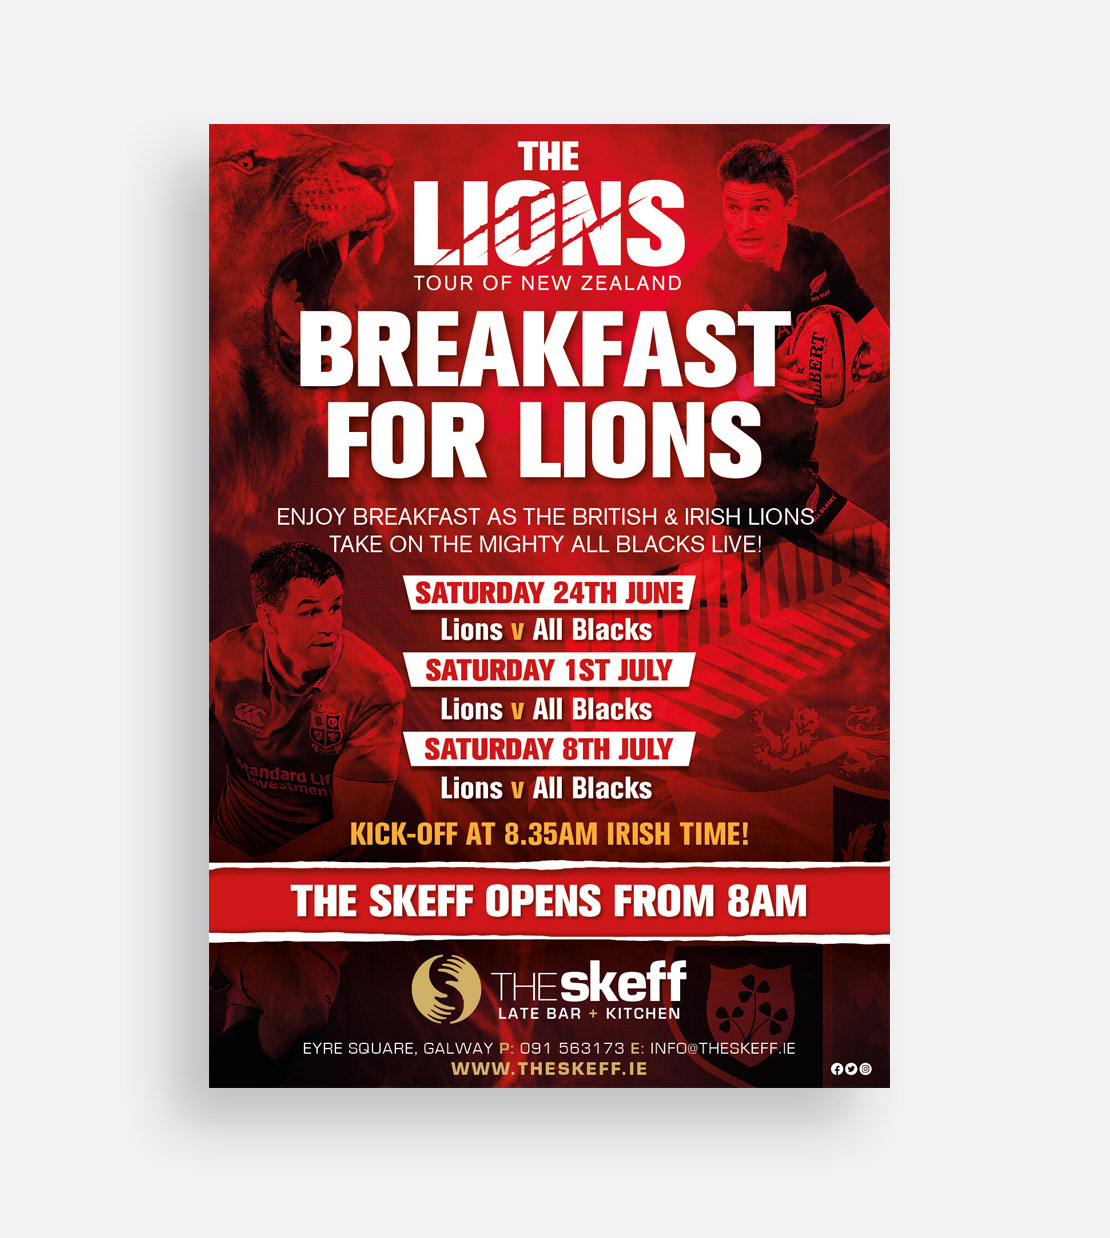 The Skeff 'Breakfast For Lions' promotional campaign poster